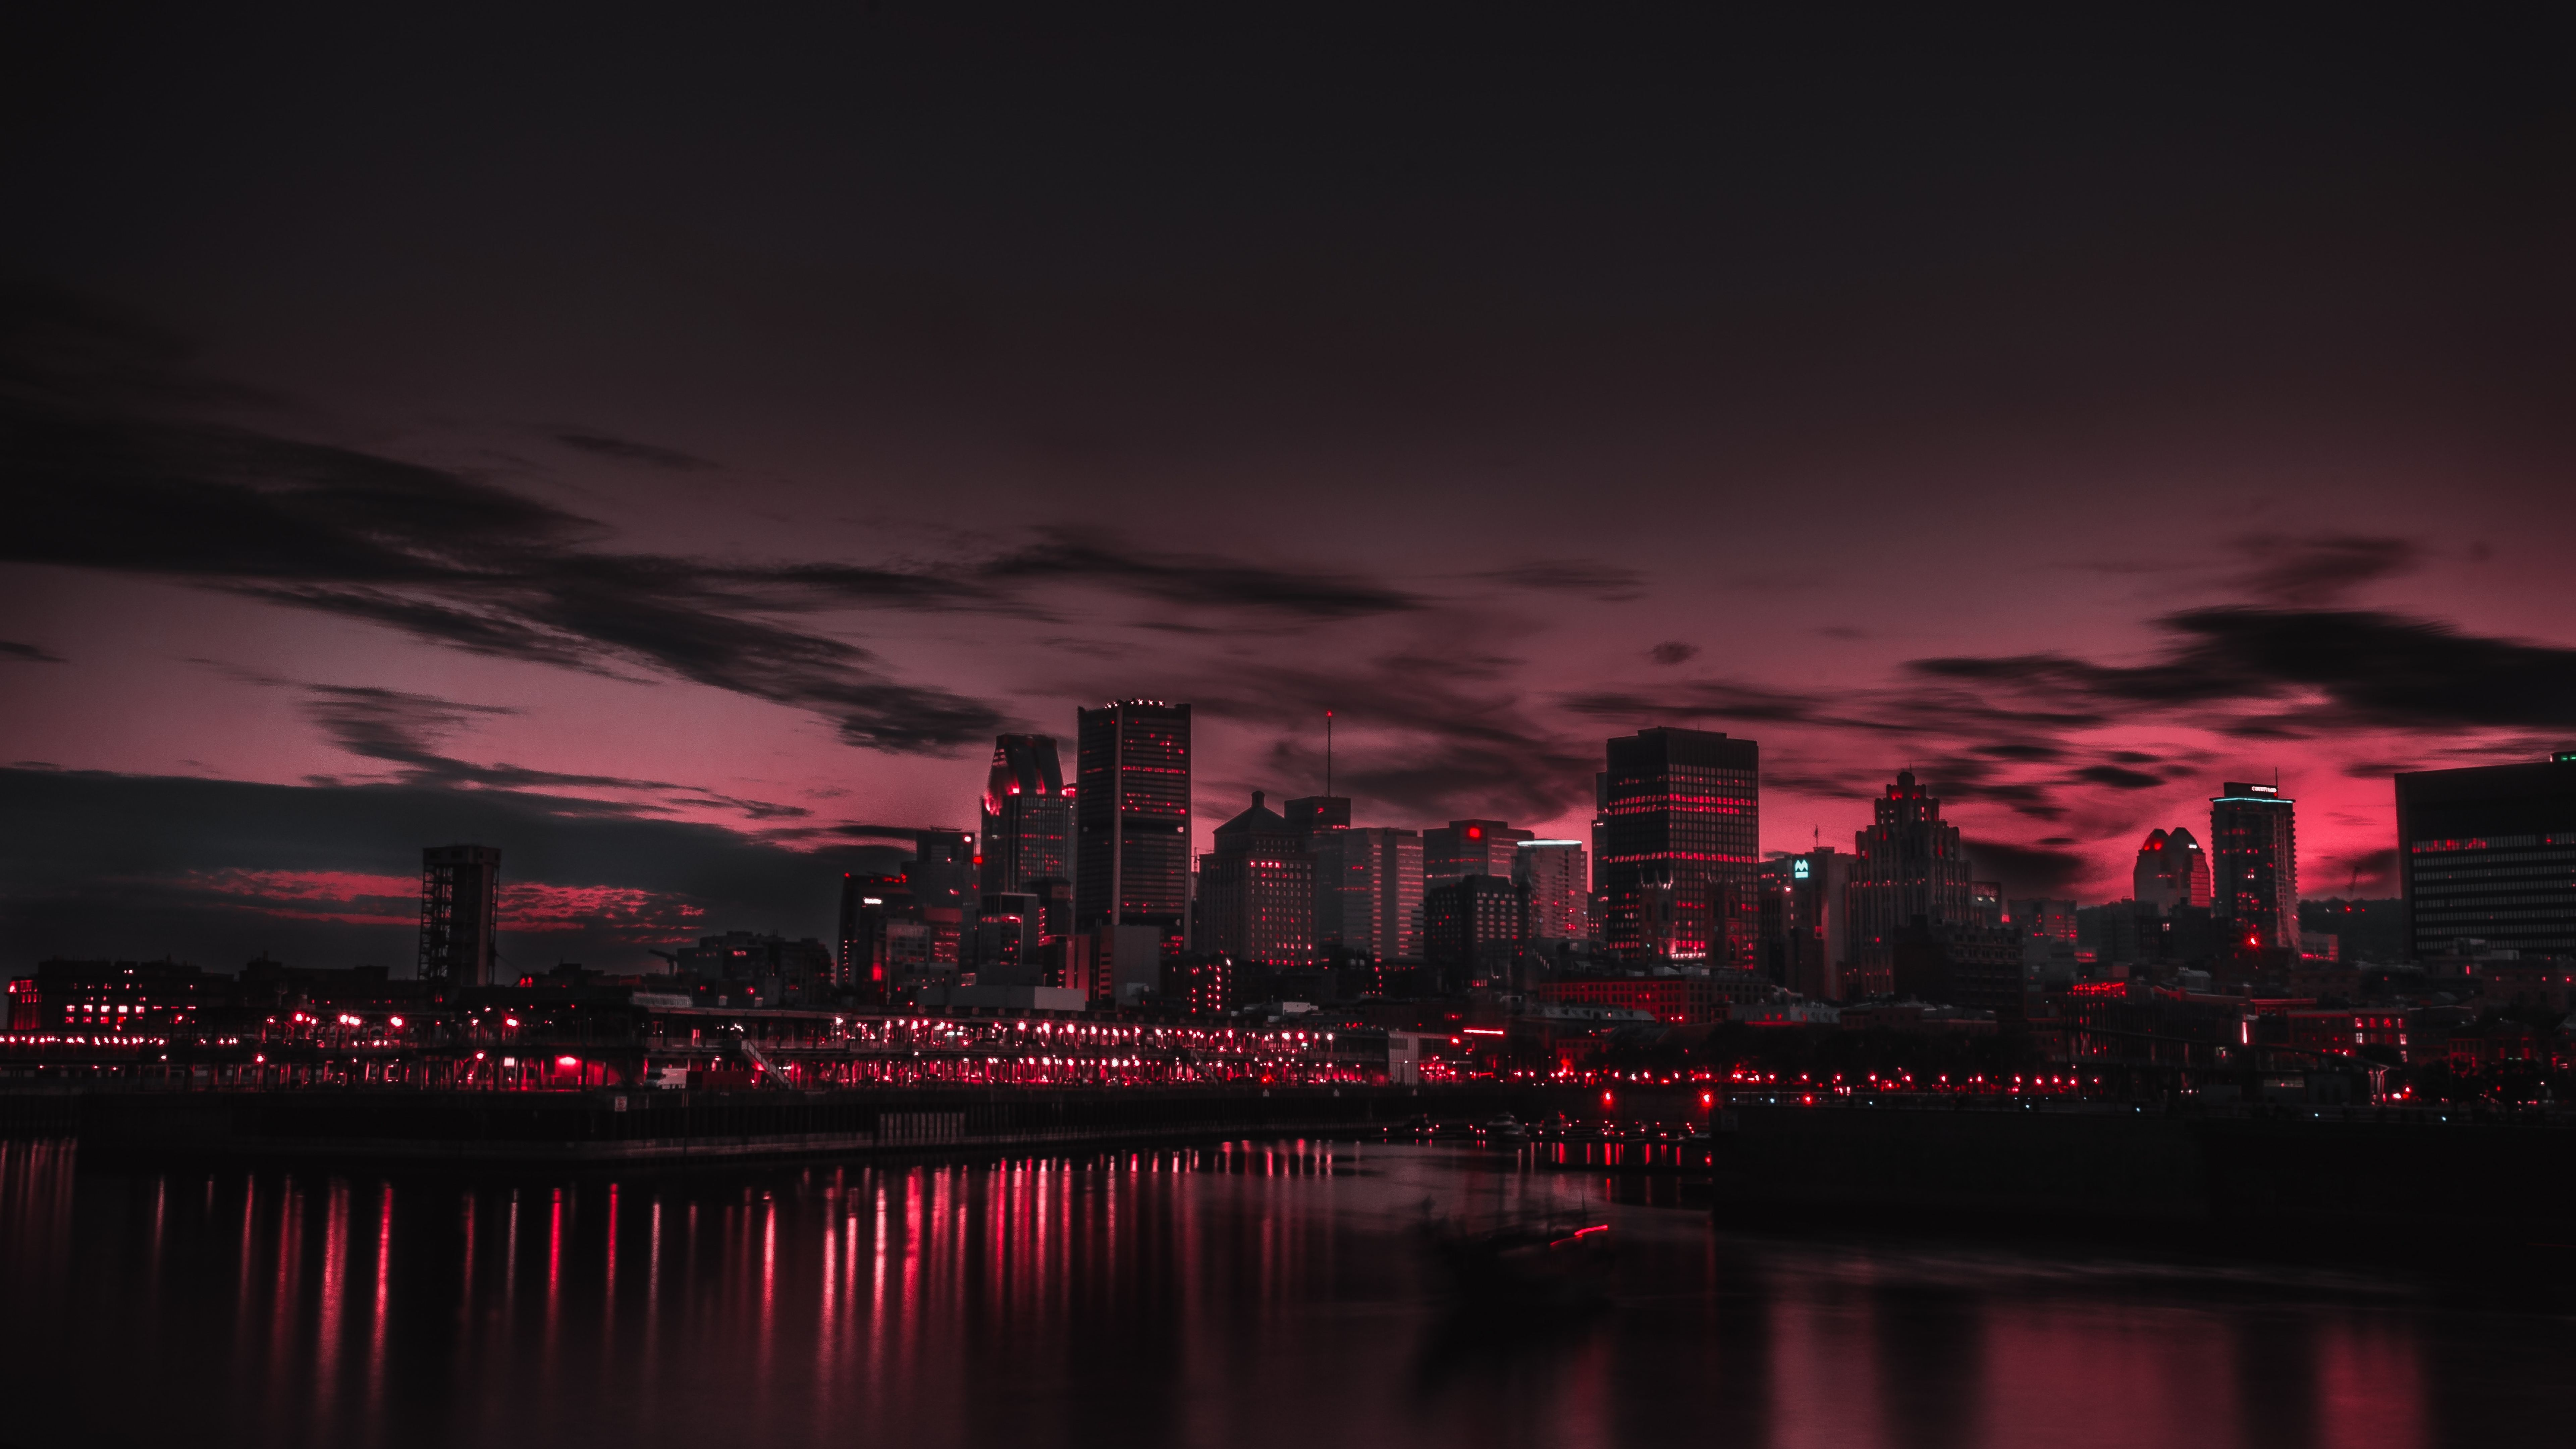 Panoramic Pictures Galaxy S6: Red Night Panorama Buildings Lights And Red Sky, HD 8K